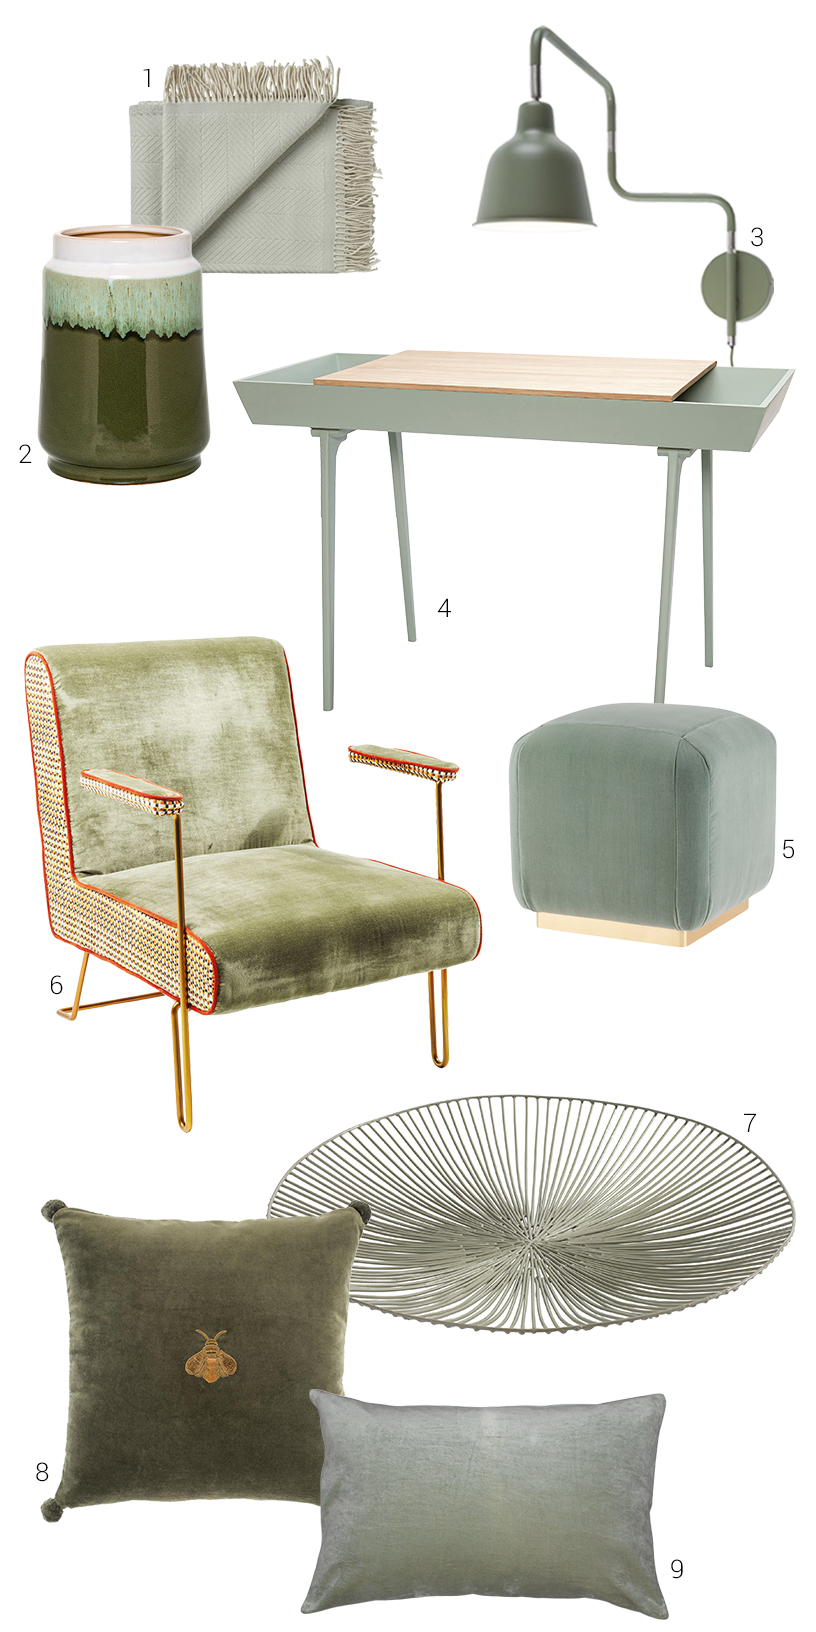 Collage of sage-colored interior design products from the Ambiente fair